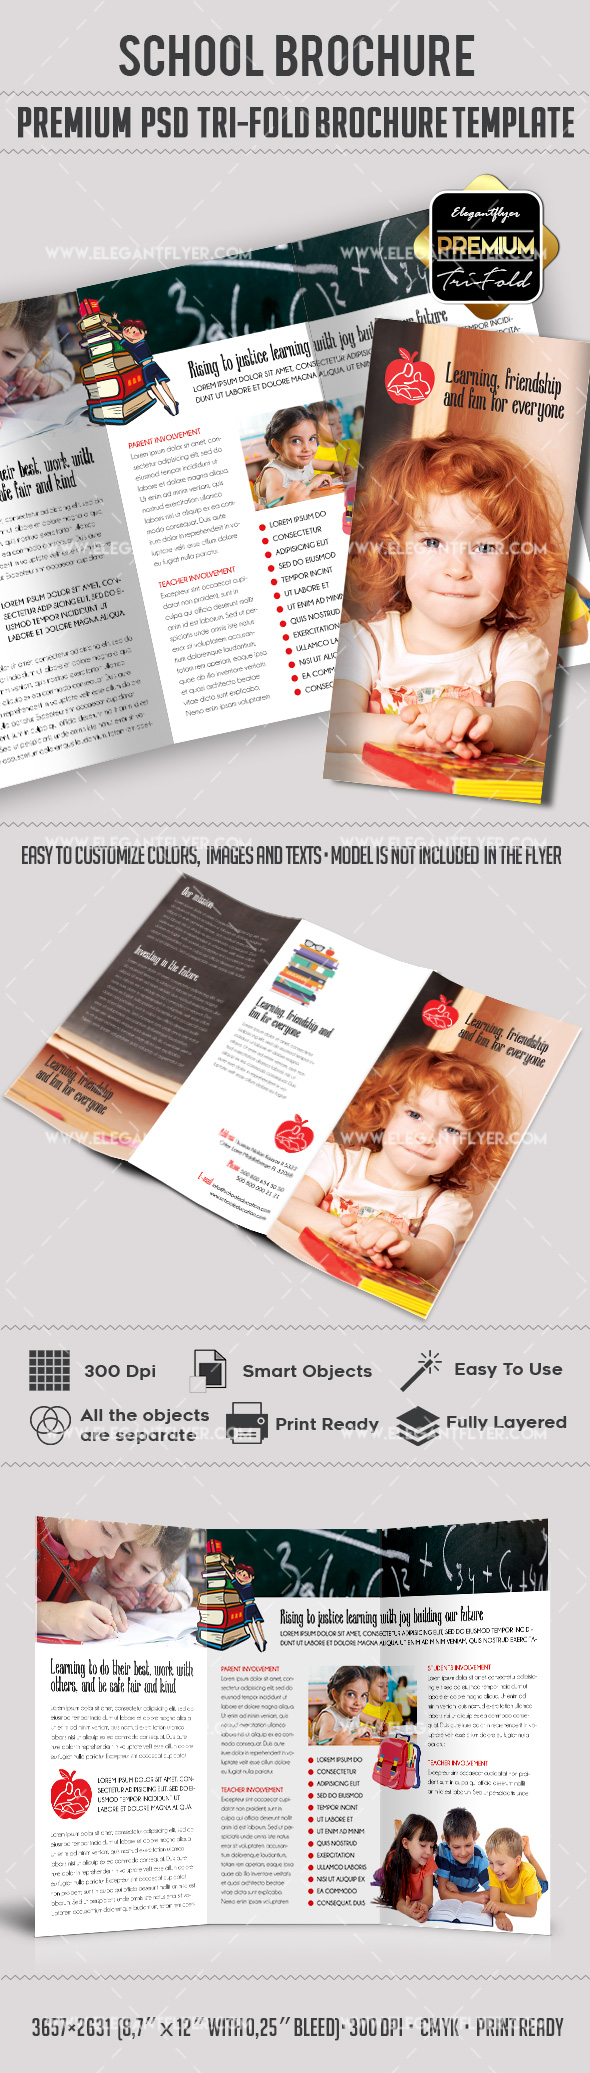 Tri fold psd brochure for school theme by elegantflyer for Tri fold school brochure template